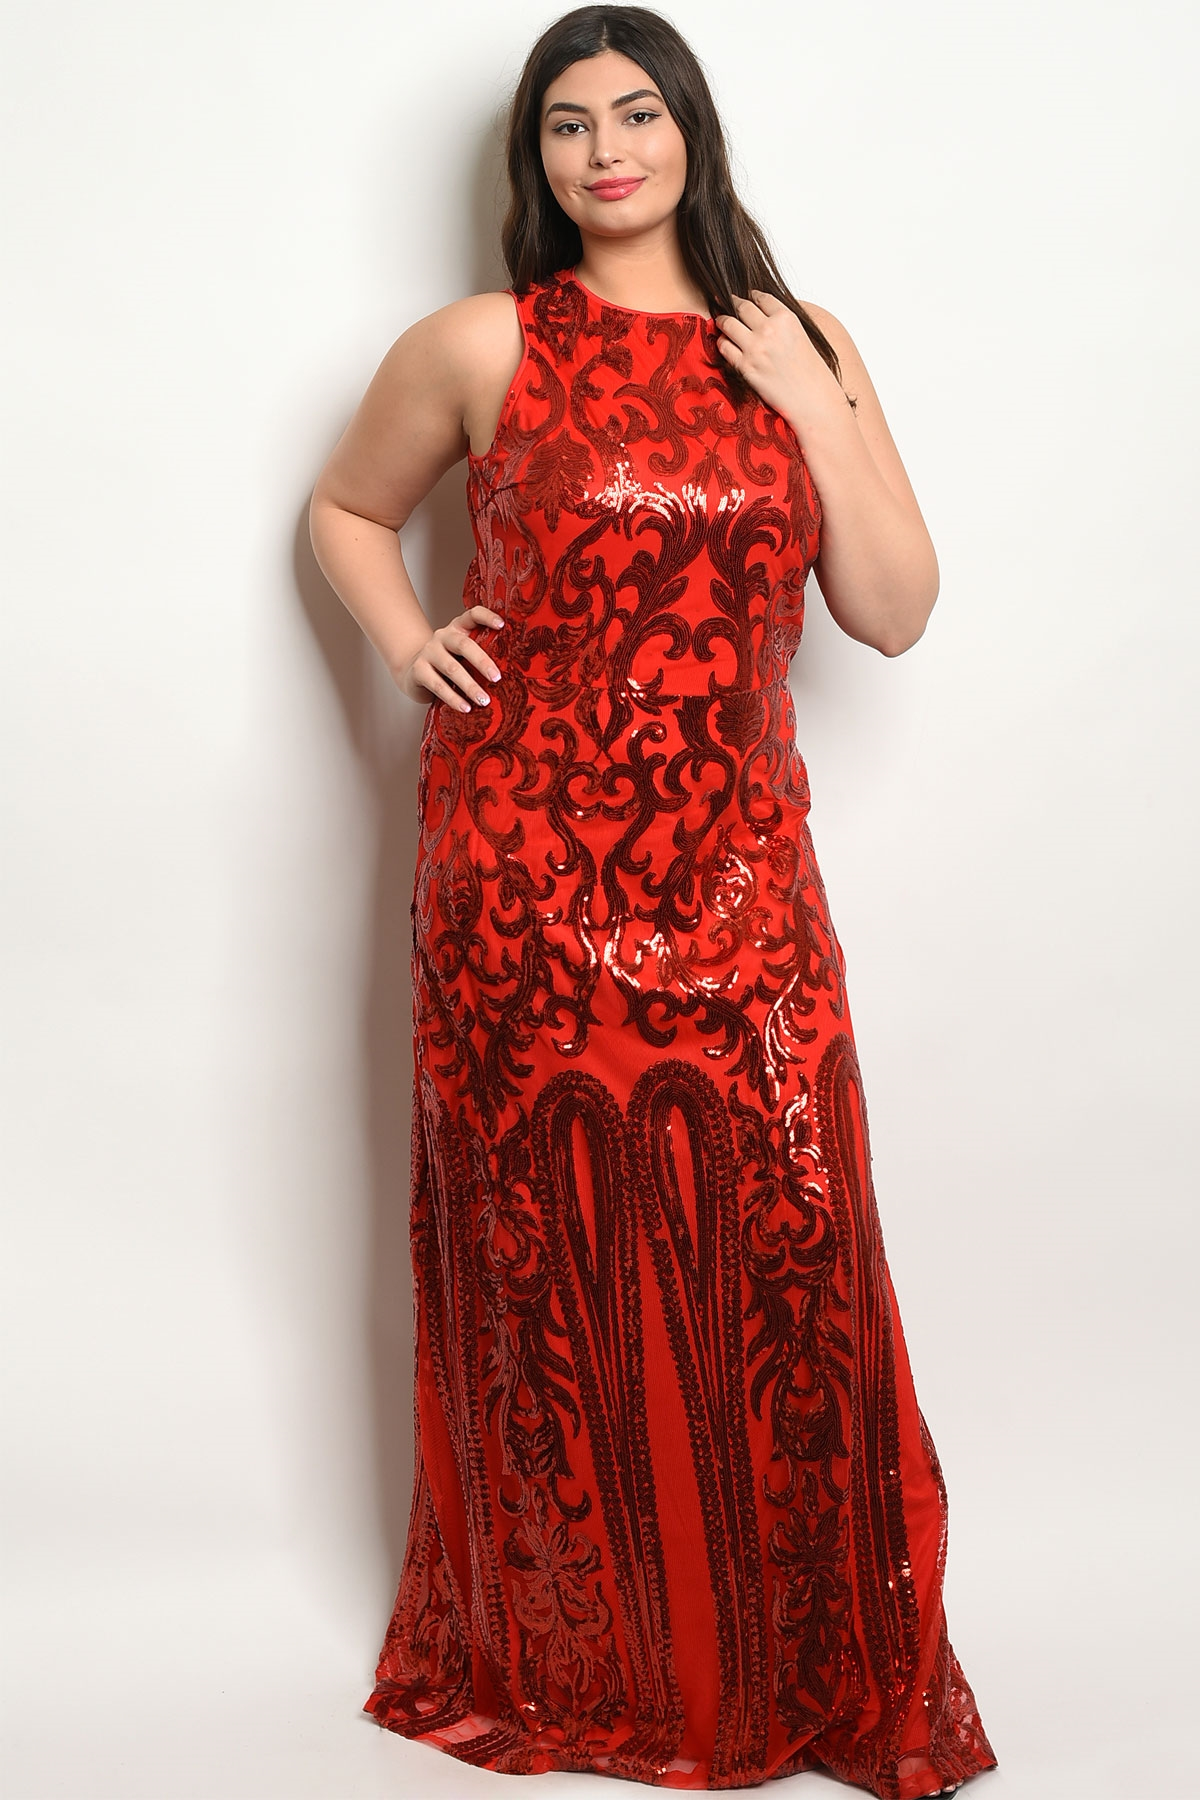 85d7b4cfdb ... RED WITH SEQUINS PLUS SIZE DRESS 2-2. Larger Photo ...